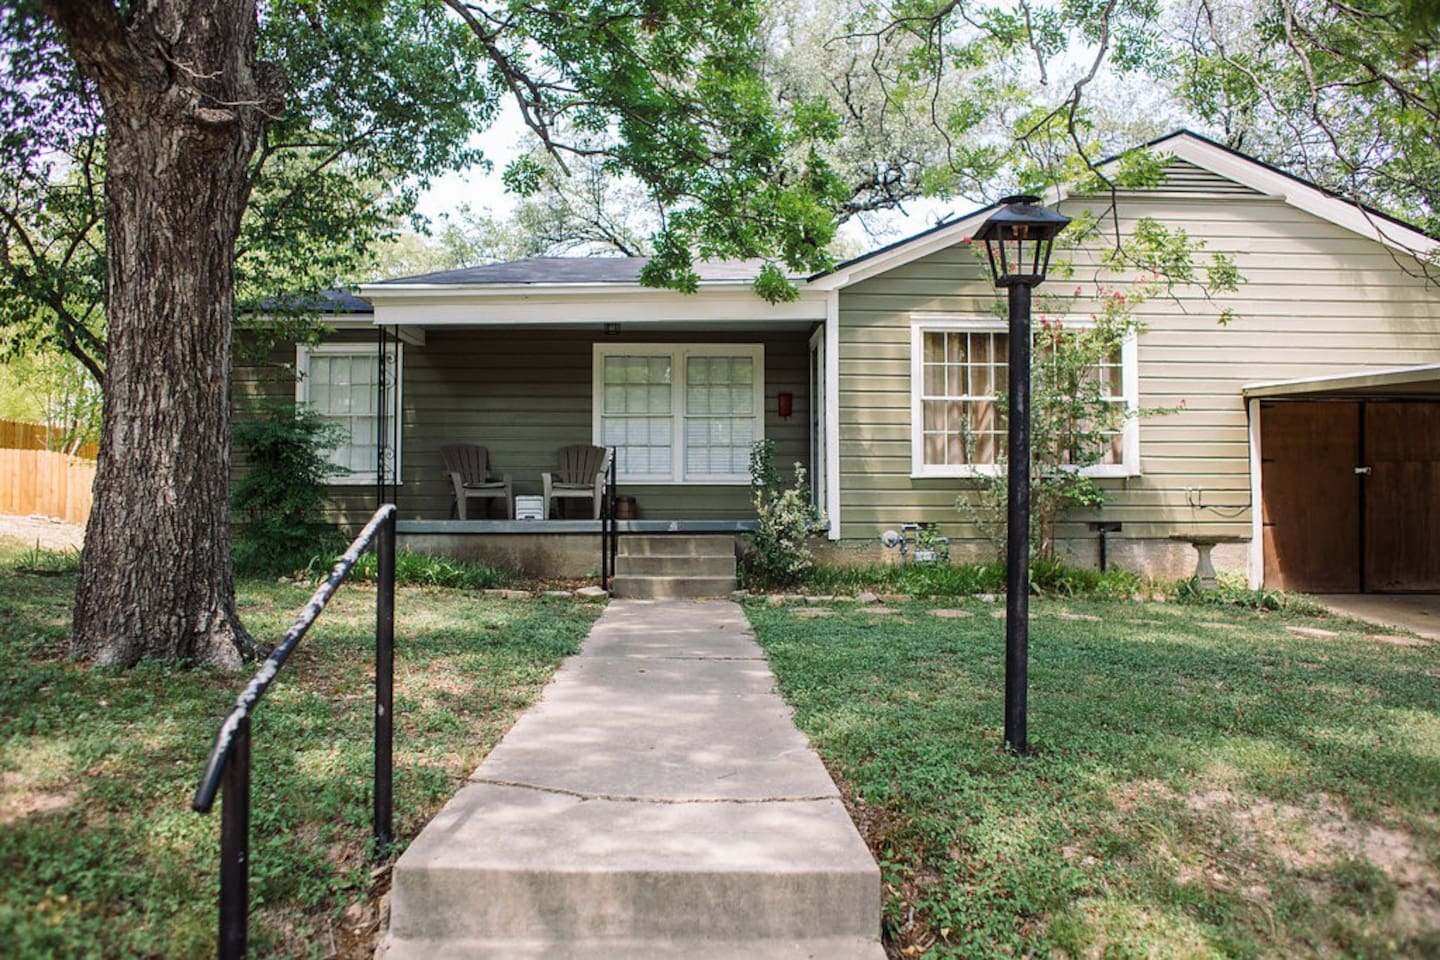 Image of Airbnb rental in Waco